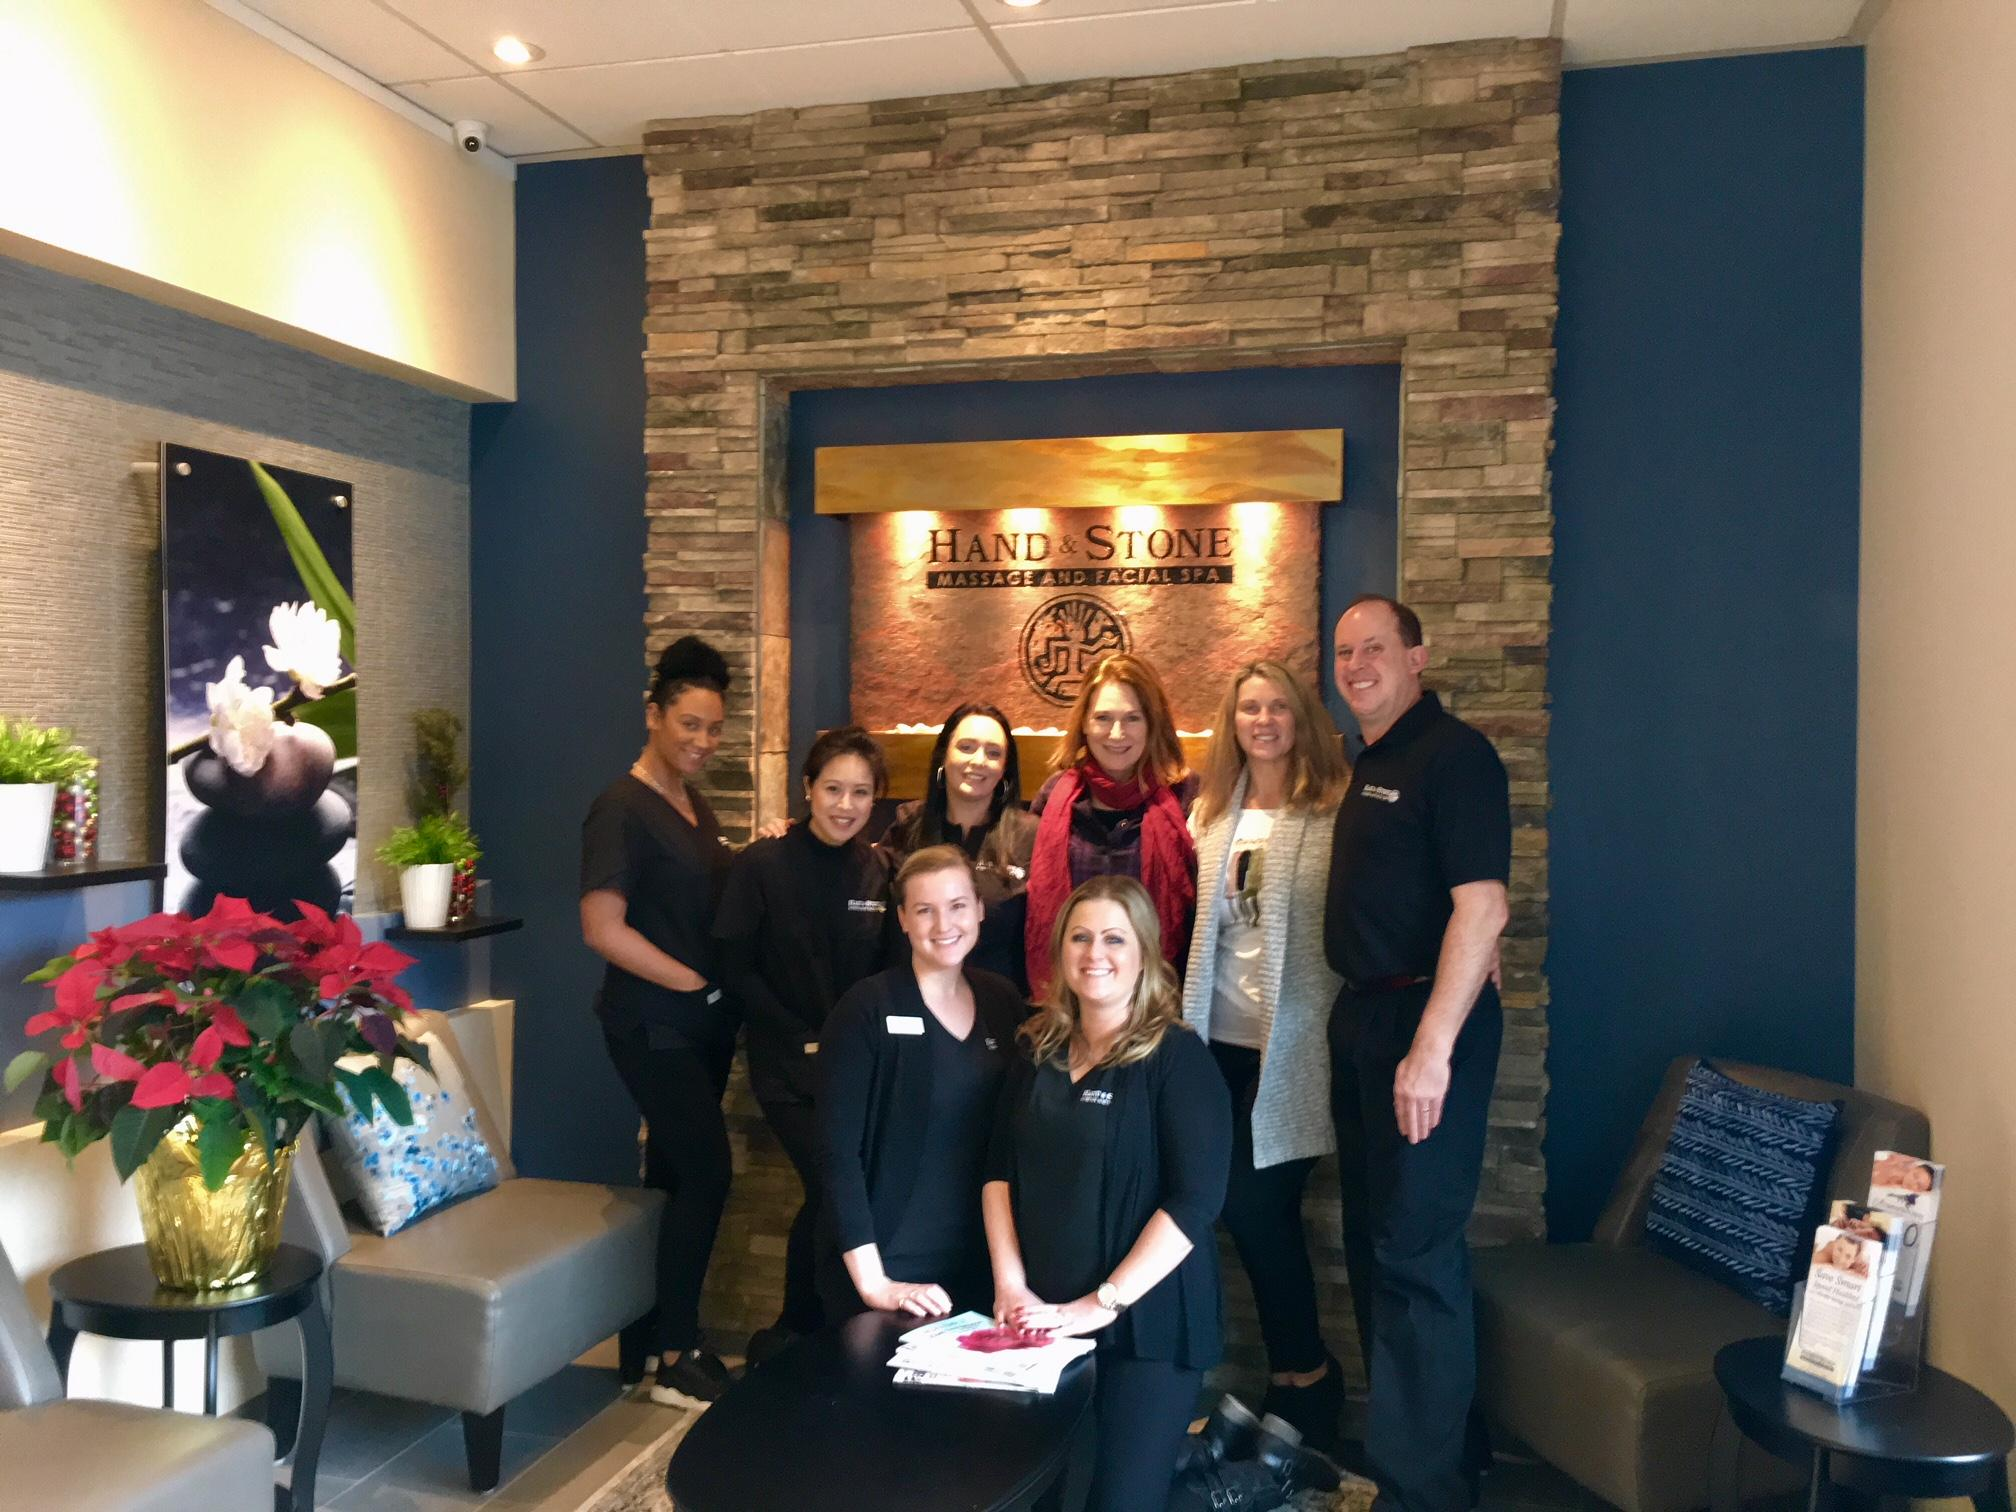 Your Hand & Stone Massage and Facial Spa team in Kirkland Washington